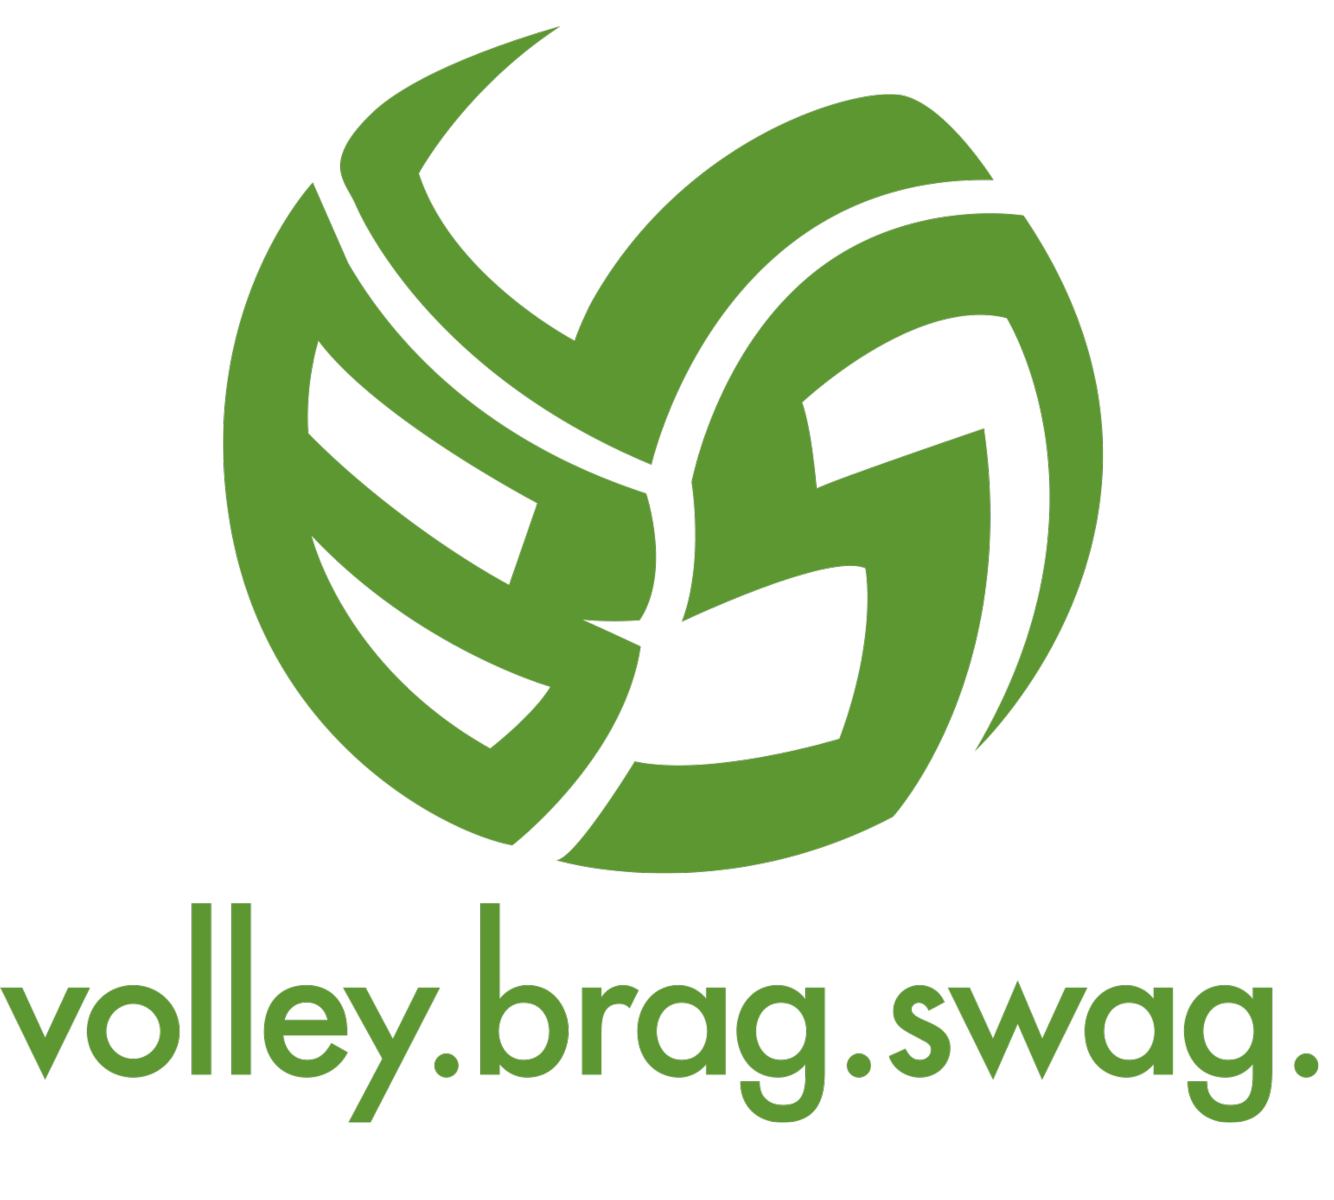 The Volleybragswag Volleyball Logos